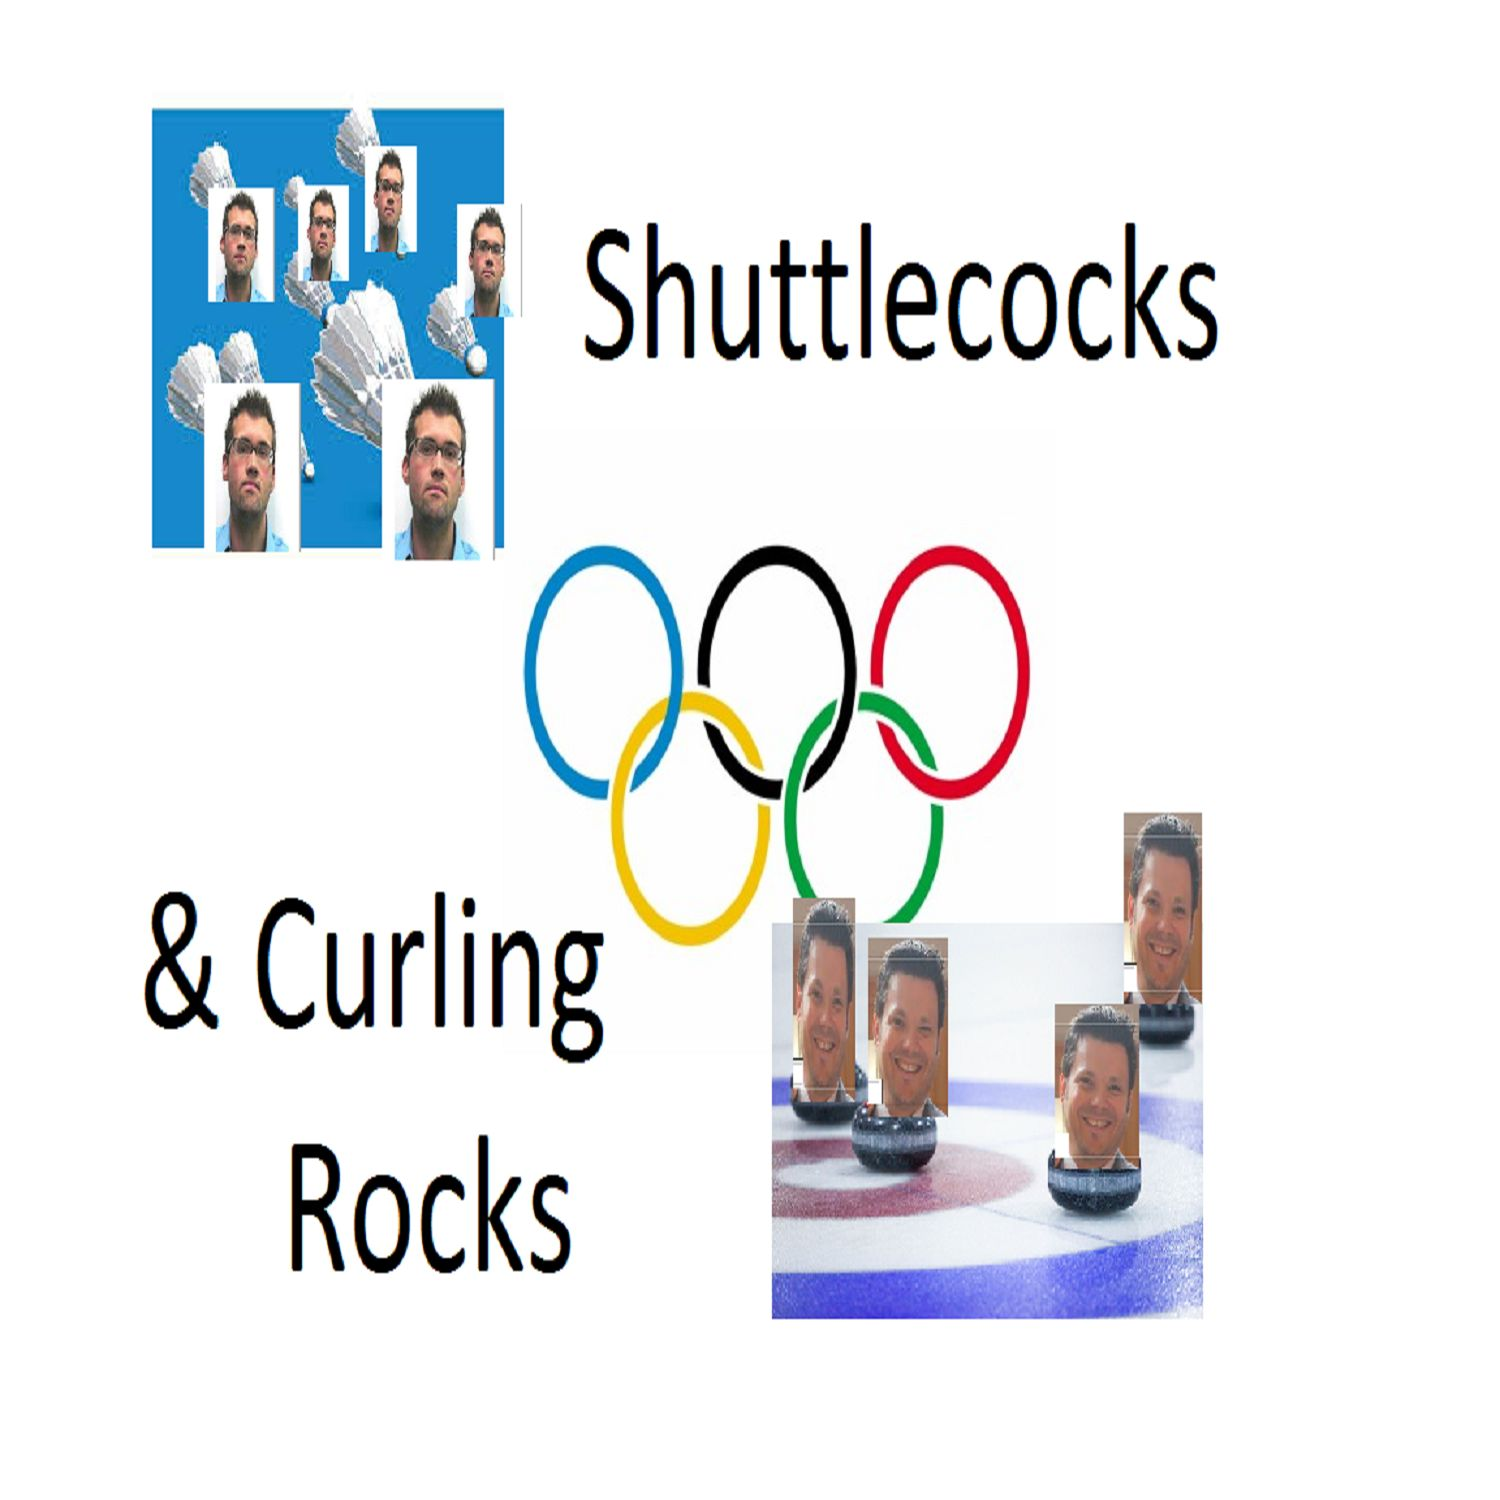 Shuttlecocks and Curling Rocks